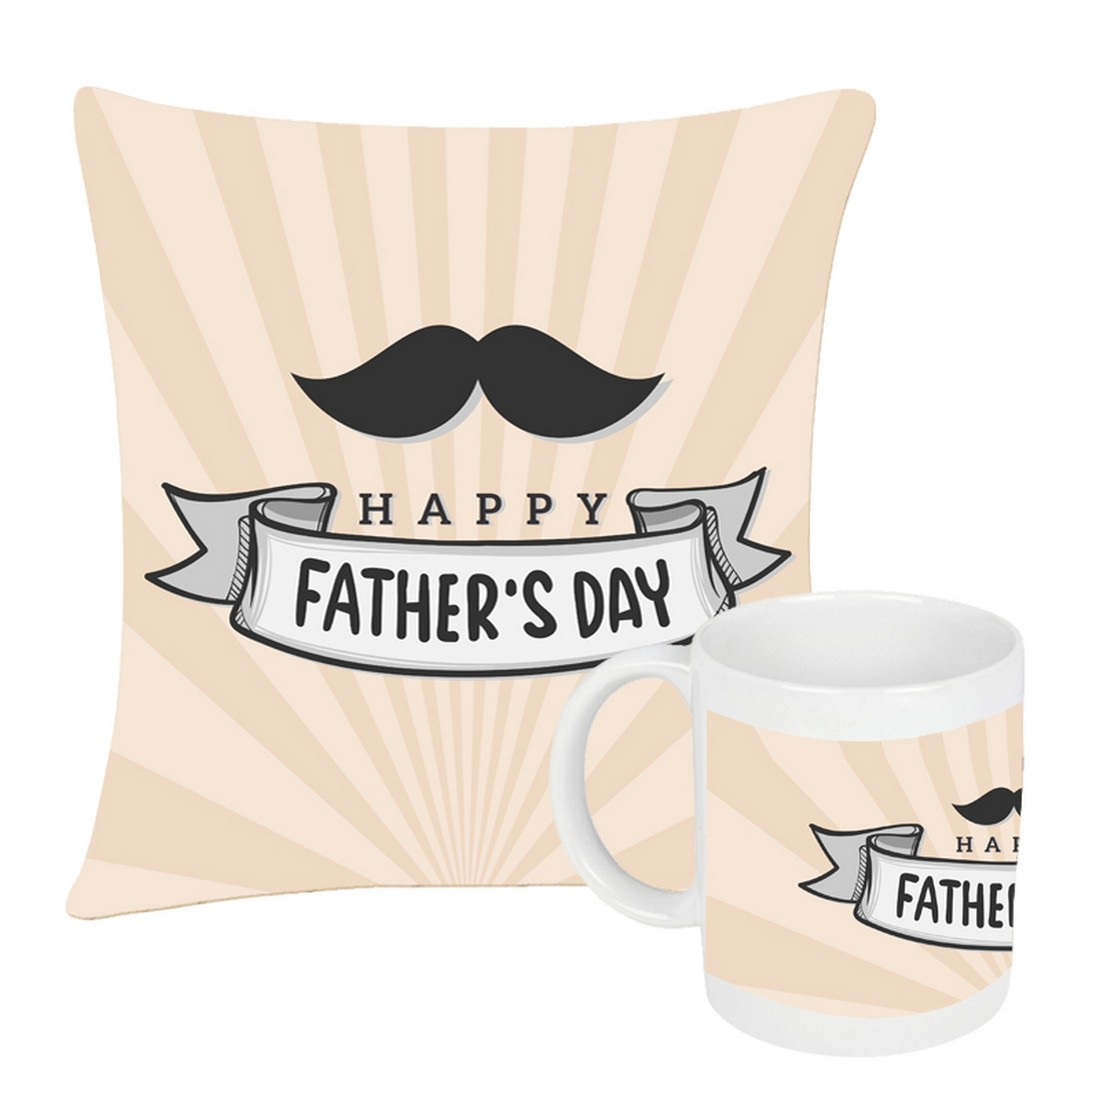 Sattva Combo Premium Printed Cushion Cover With Filler 12 X12 Inches & Ceramic Mug 350 ML EVSCOCM011 For Father's Day